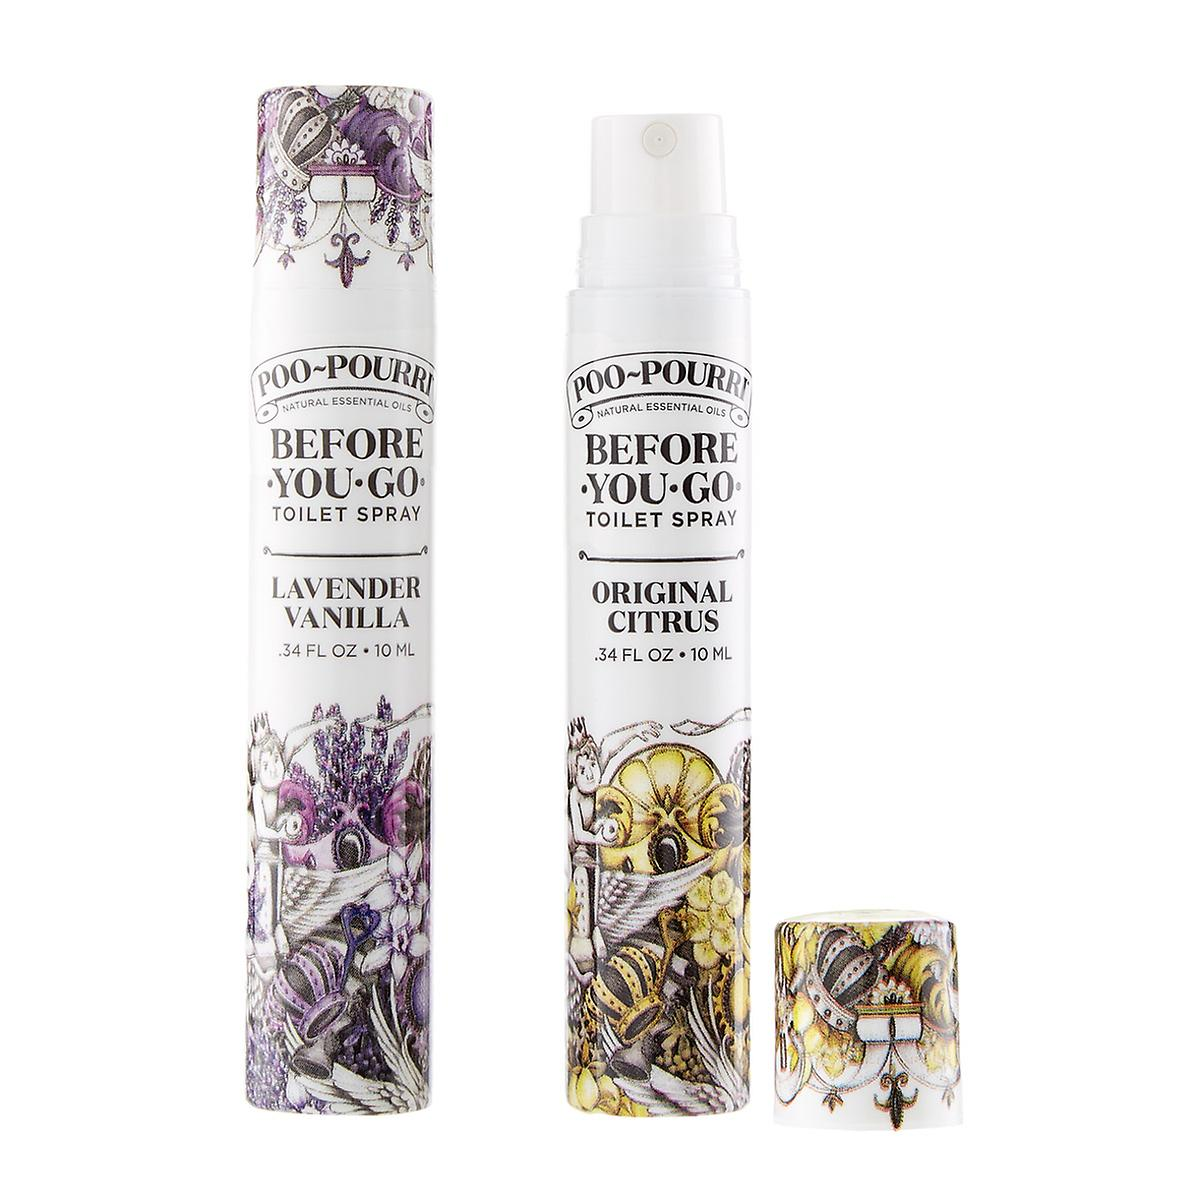 10ml Poo-Pourri Sprayers